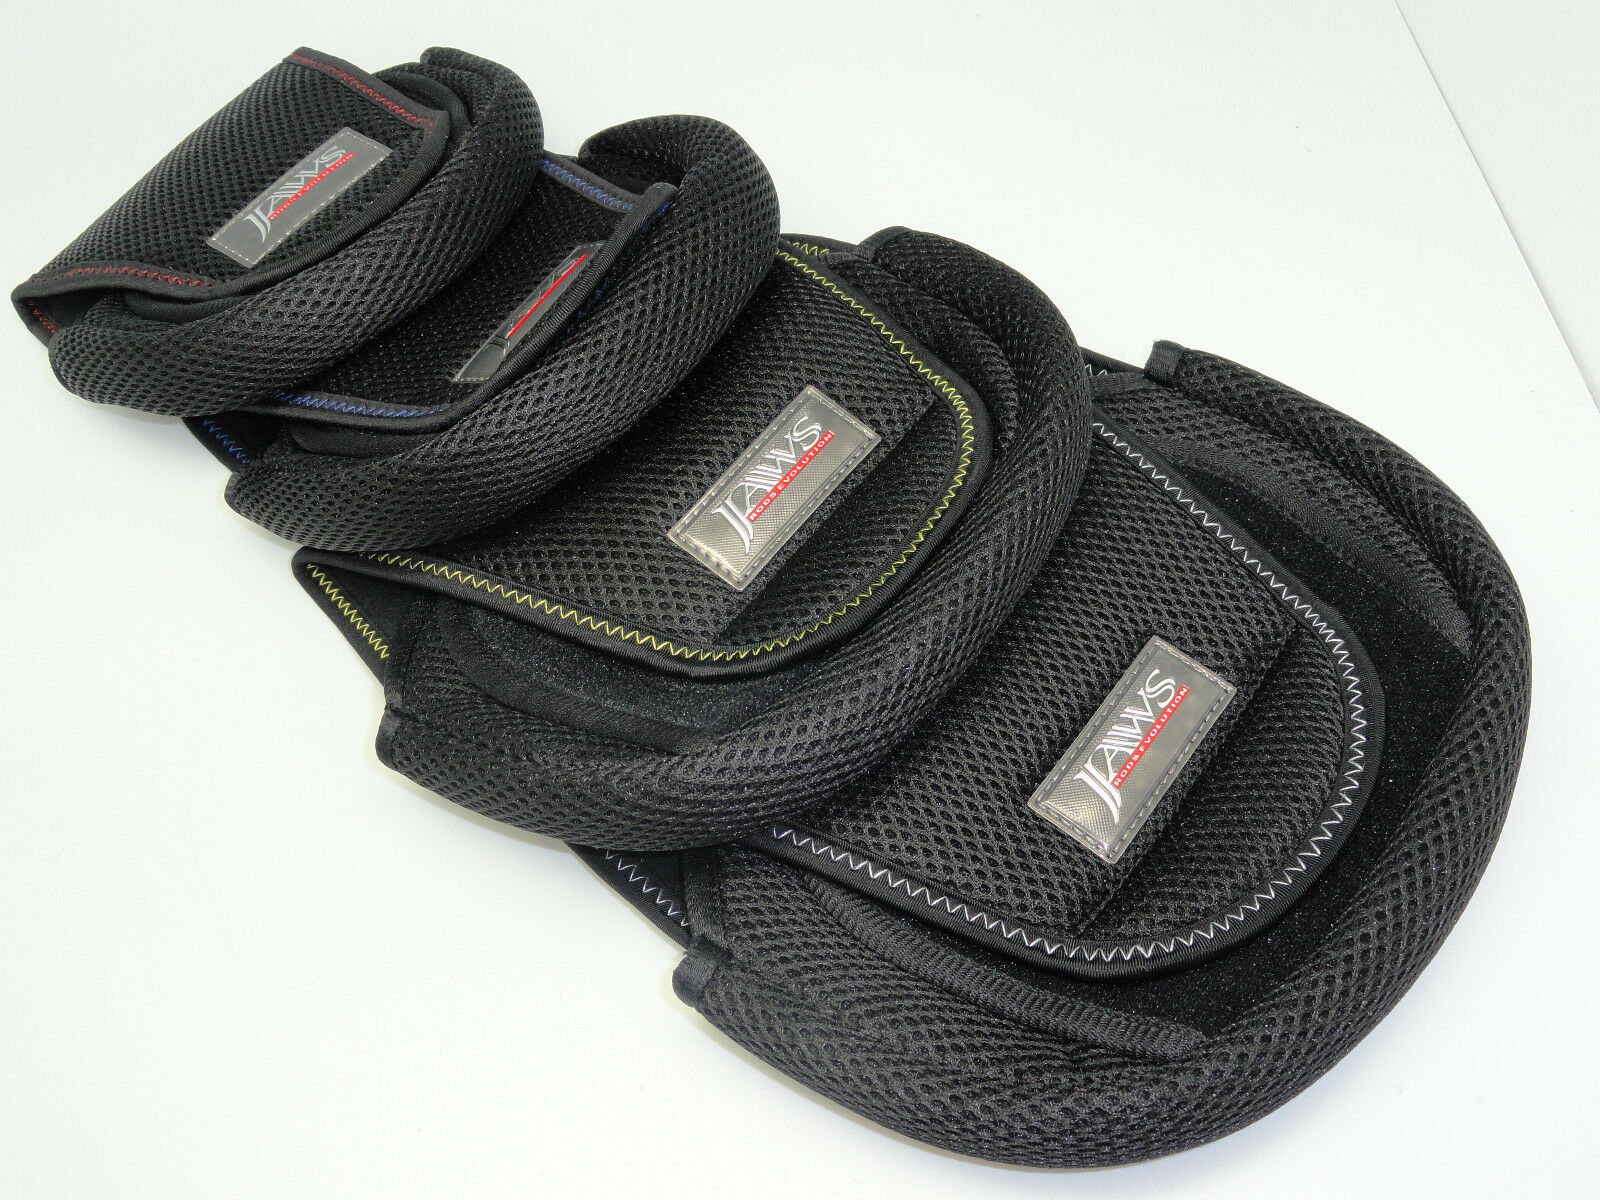 4 JAWS SPINNING Pouch Dimensione S M L XL FOR Accurate SR 6 12 20 30 Van Staal reel